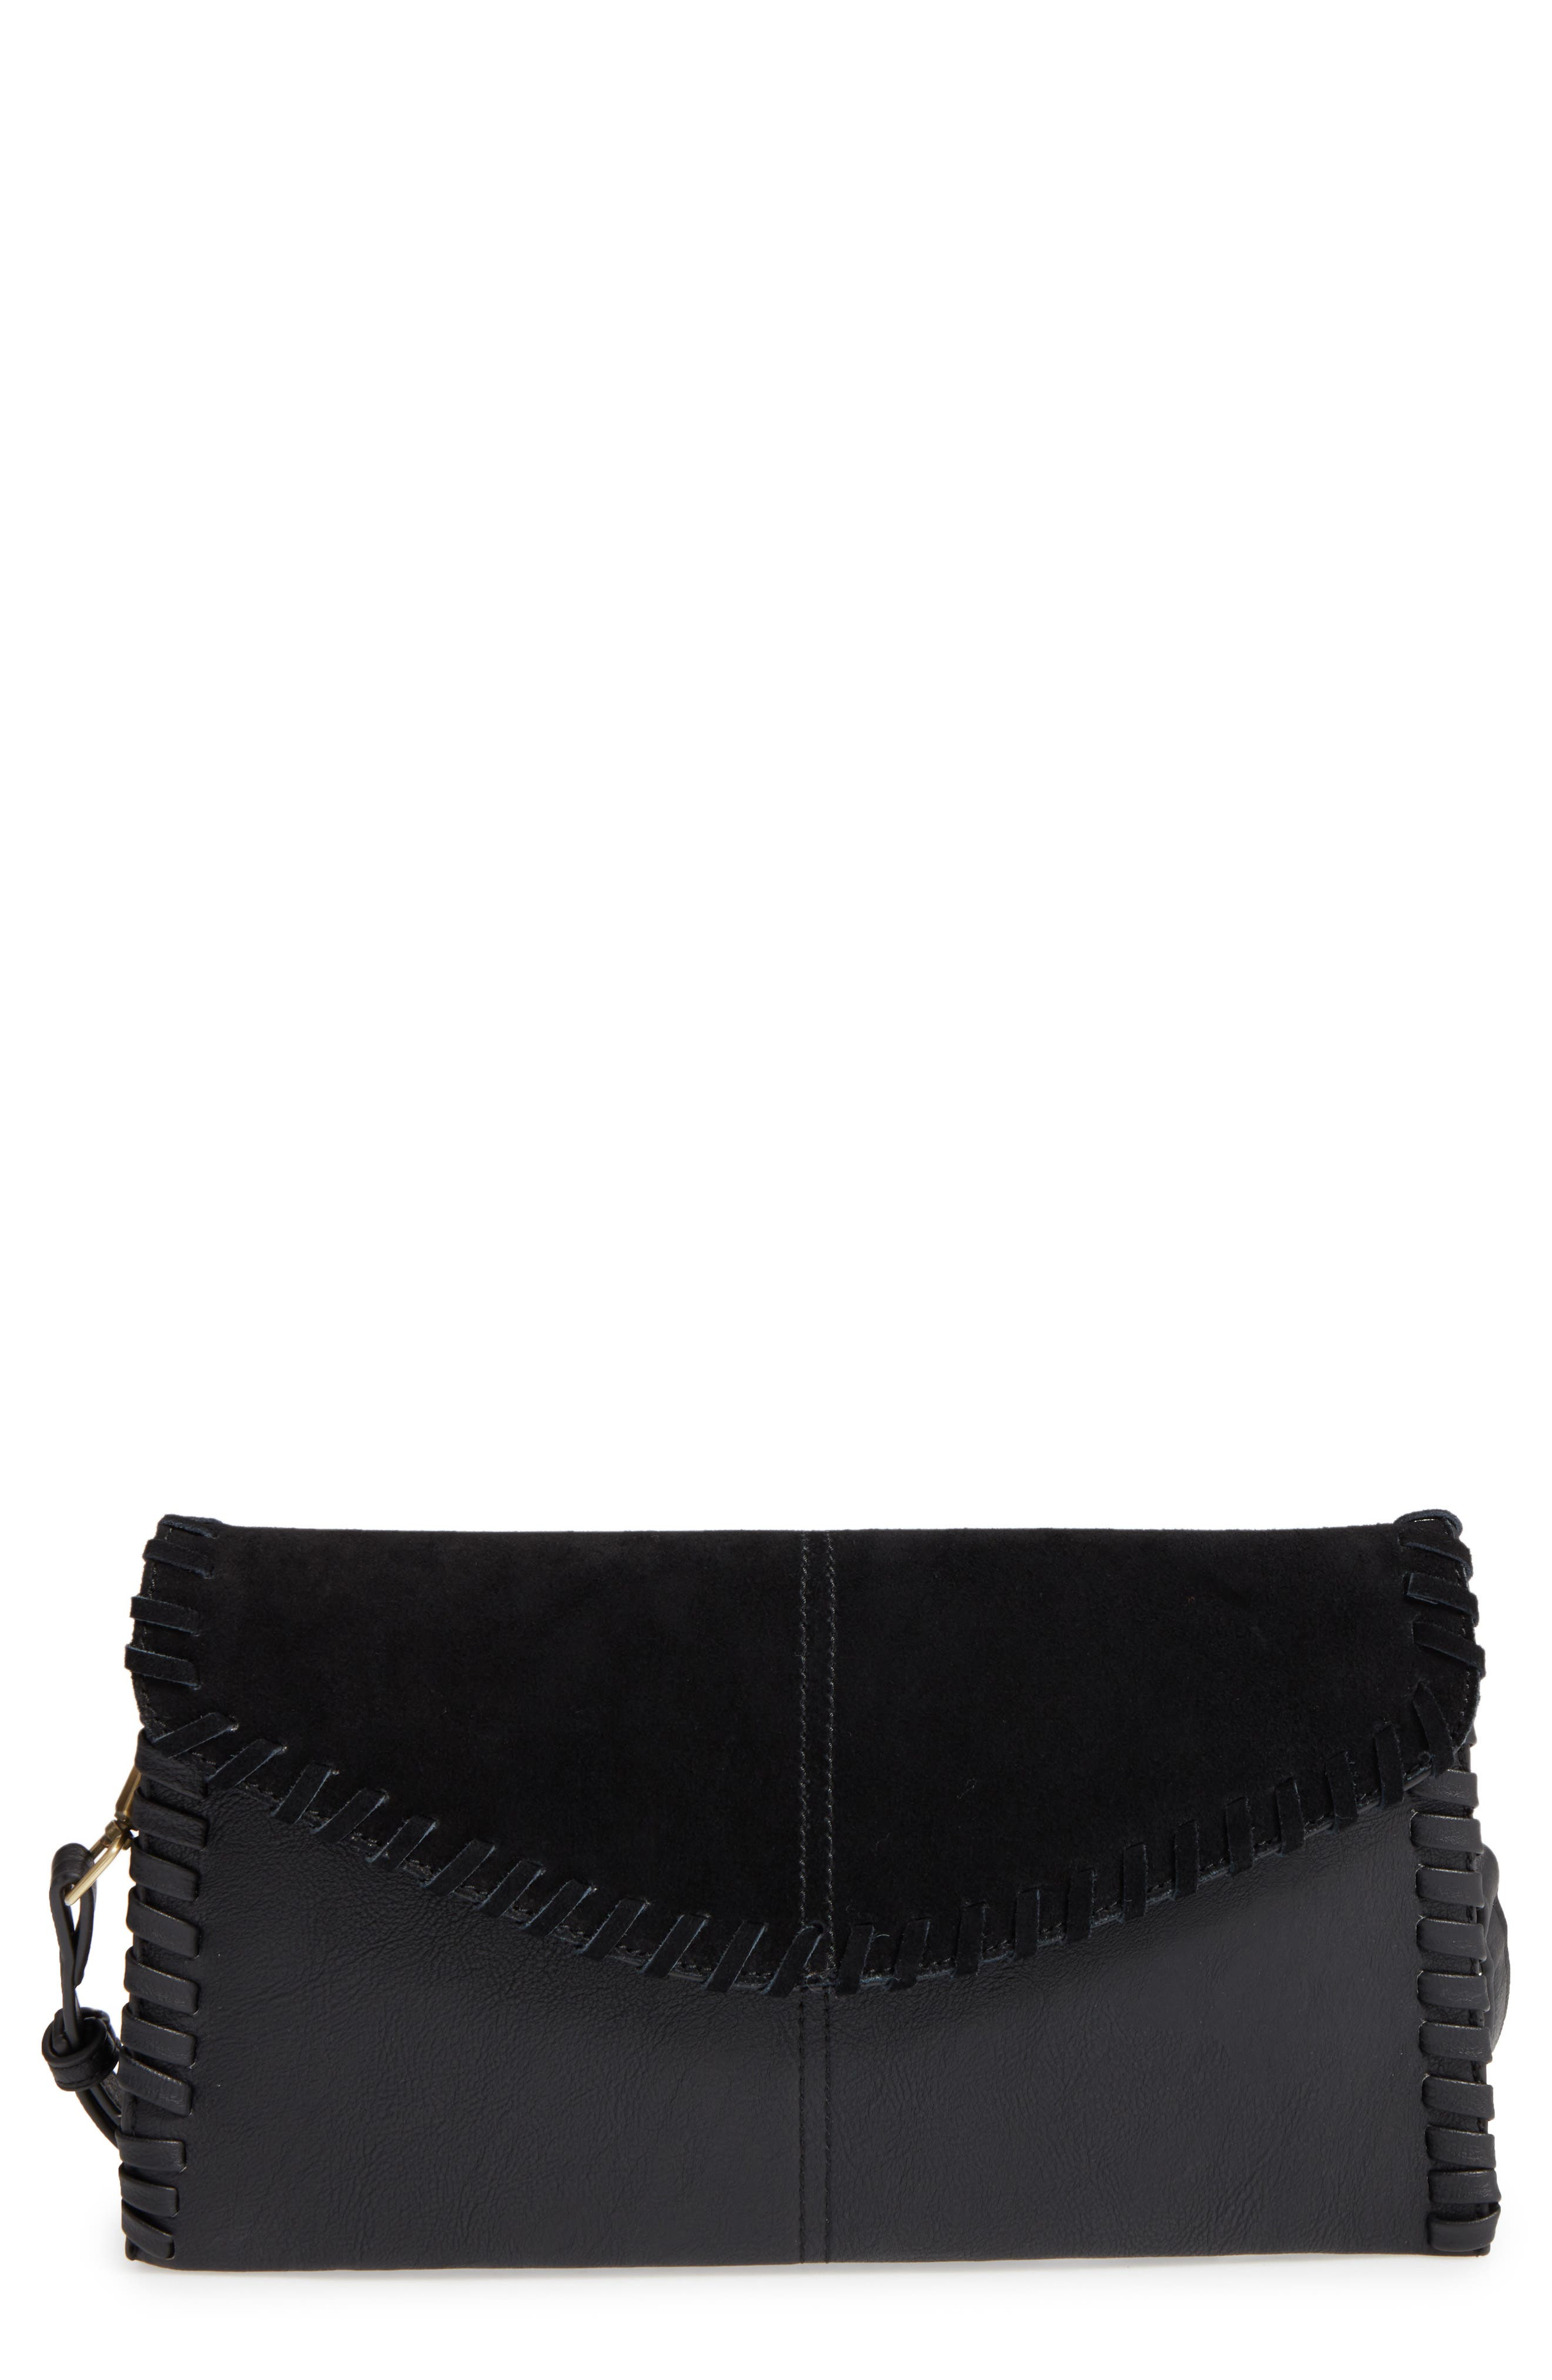 SOLE SOCIETY,                             Waverly Whipstitch Clutch,                             Main thumbnail 1, color,                             001